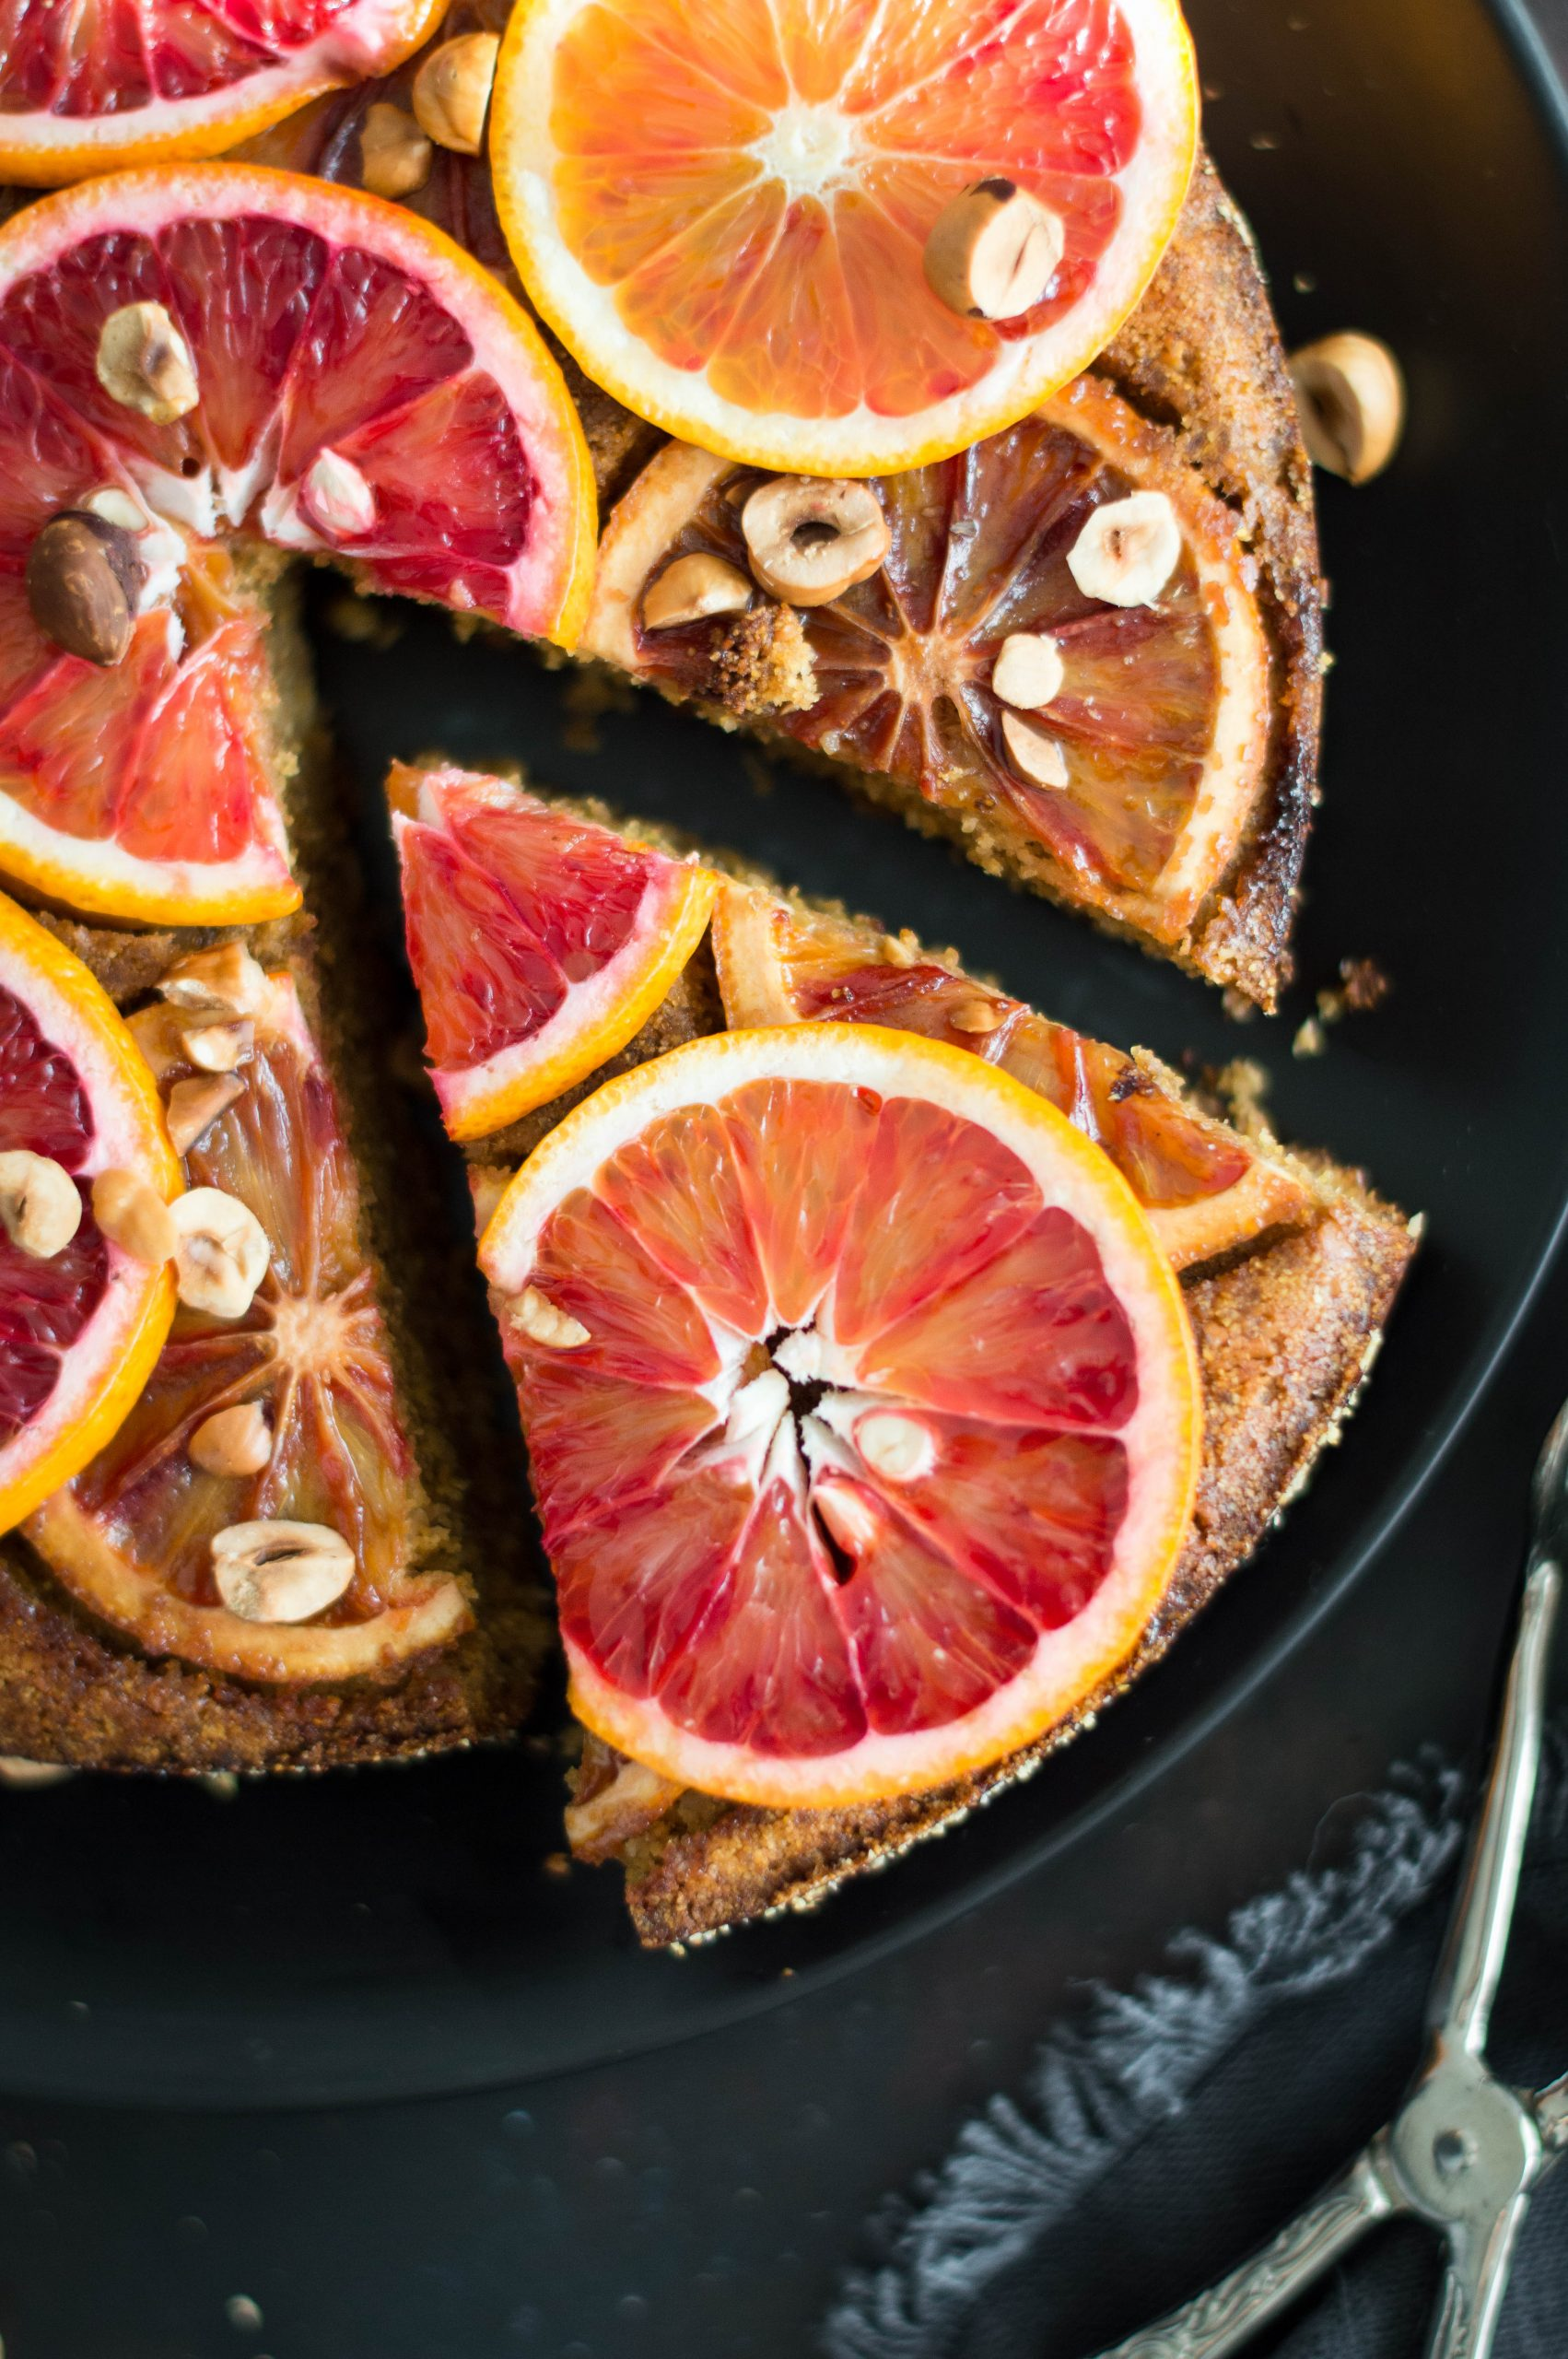 Upside down blood orange cake